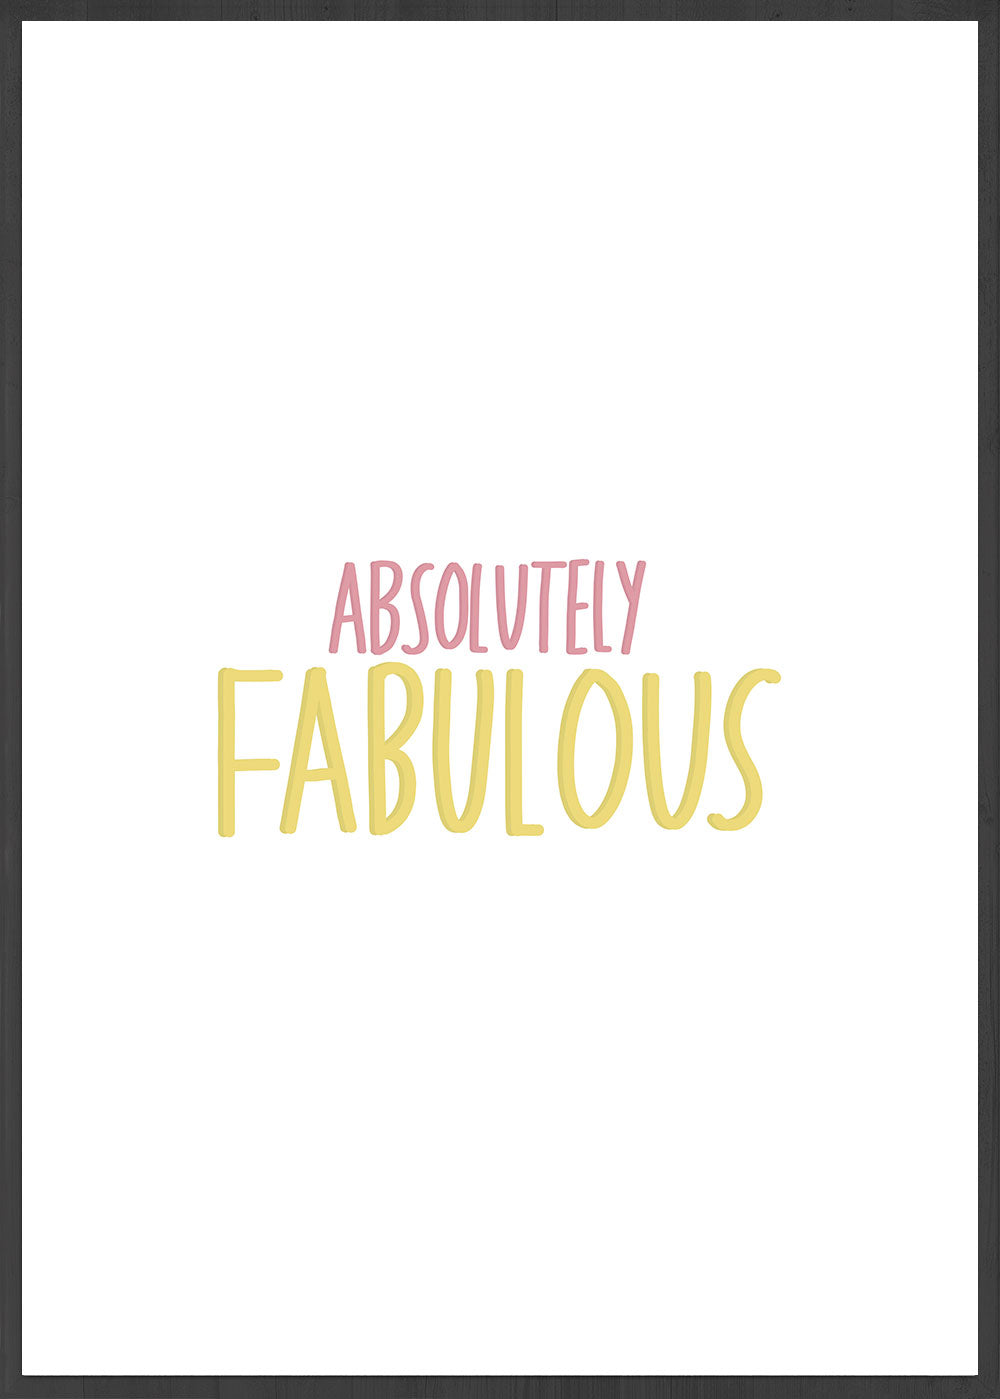 Absolutely Fabulous Poster Print in a frame